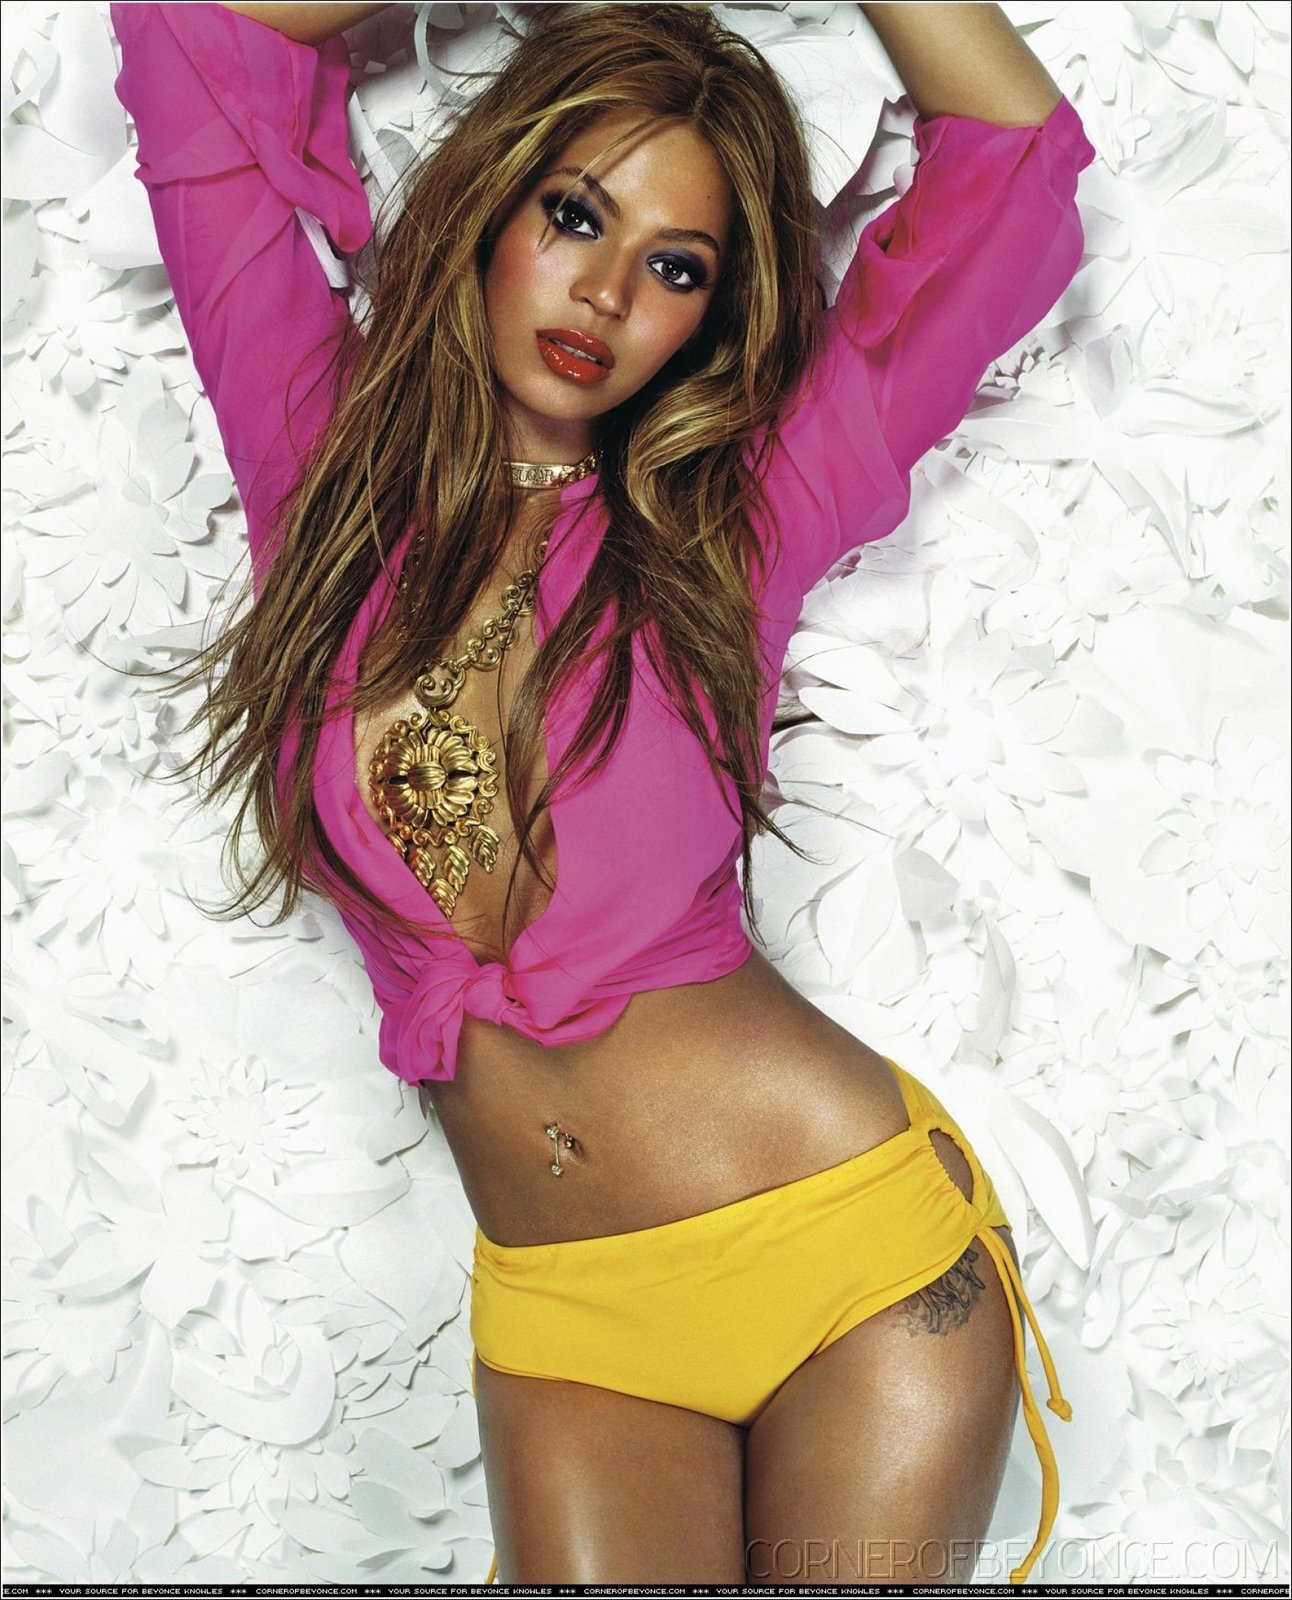 Hot Beyonce Knowles nude (43 photo), Topless, Cleavage, Twitter, cameltoe 2006